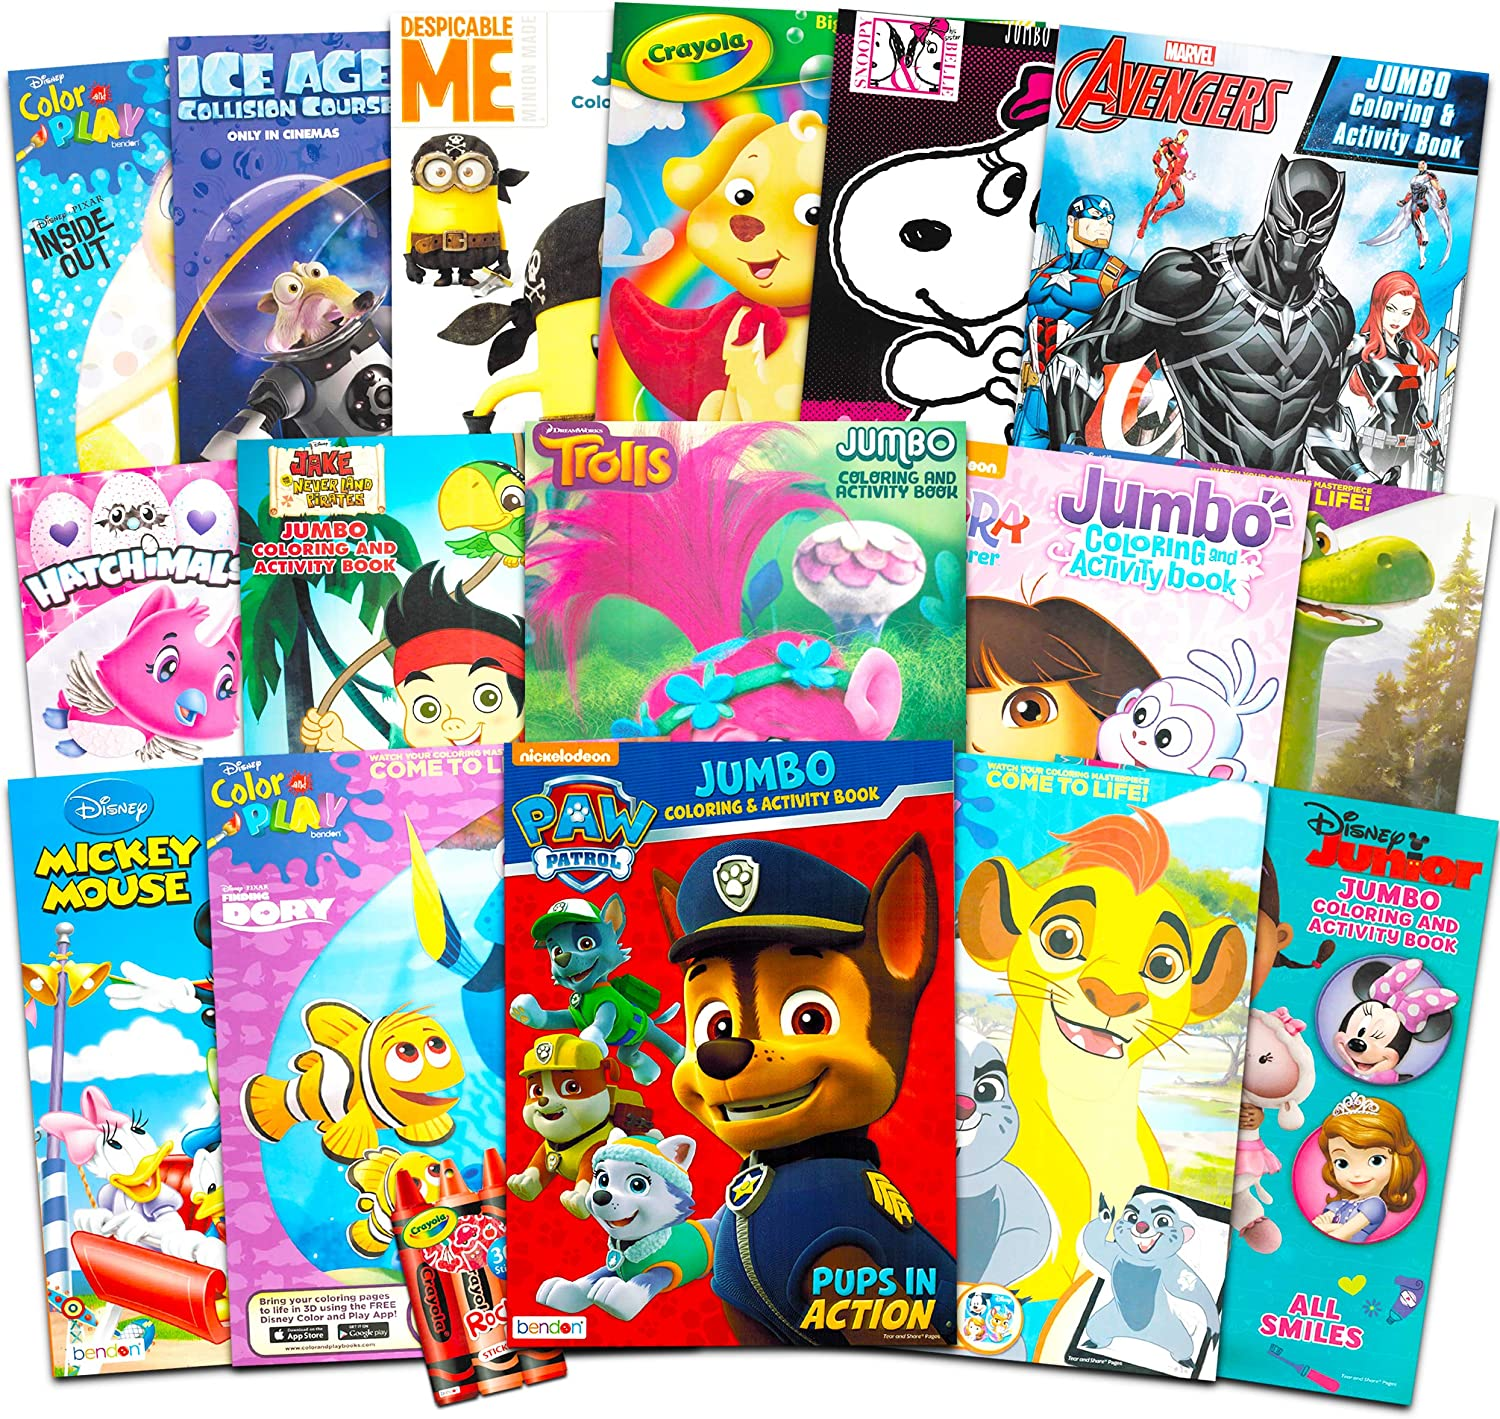 Amazon Com 16 Bulk Coloring Books For Kids Ages 4 8 Assortment Includes 16 Books With Games Puzzles Mazes And Stickers No Duplicates Toys Games